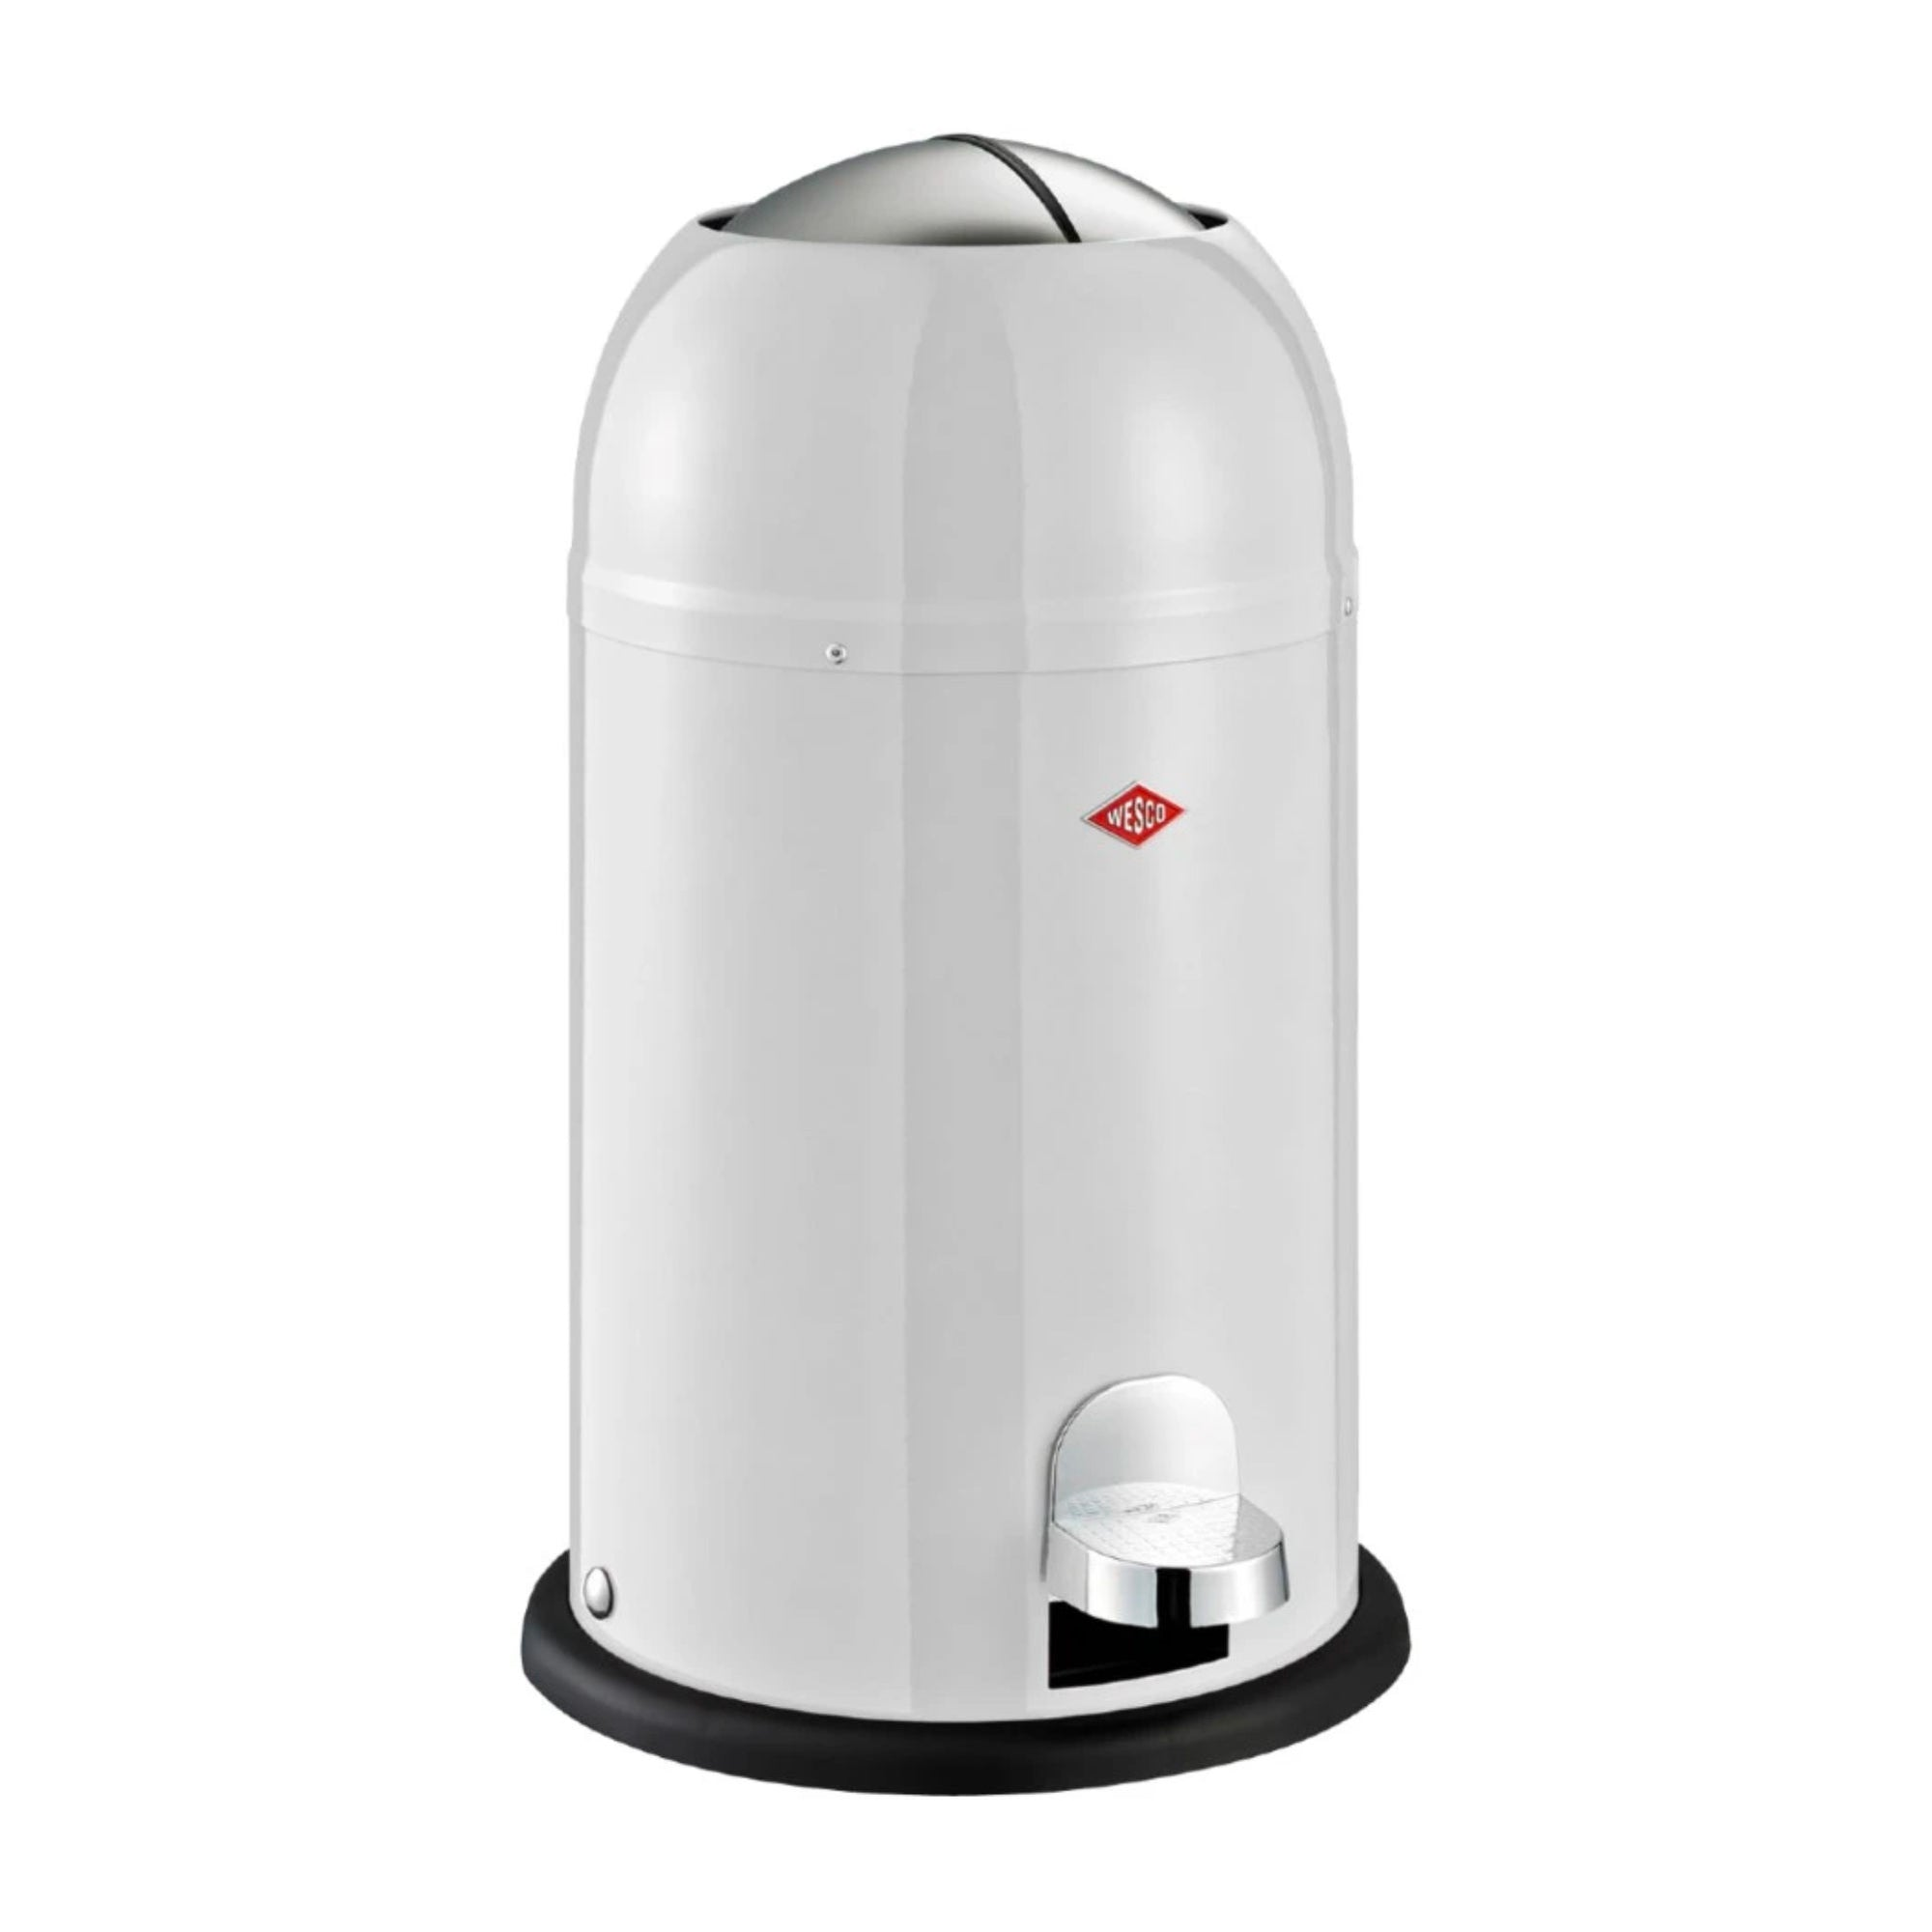 Wesco Kickmaster Junior 12 litre, white